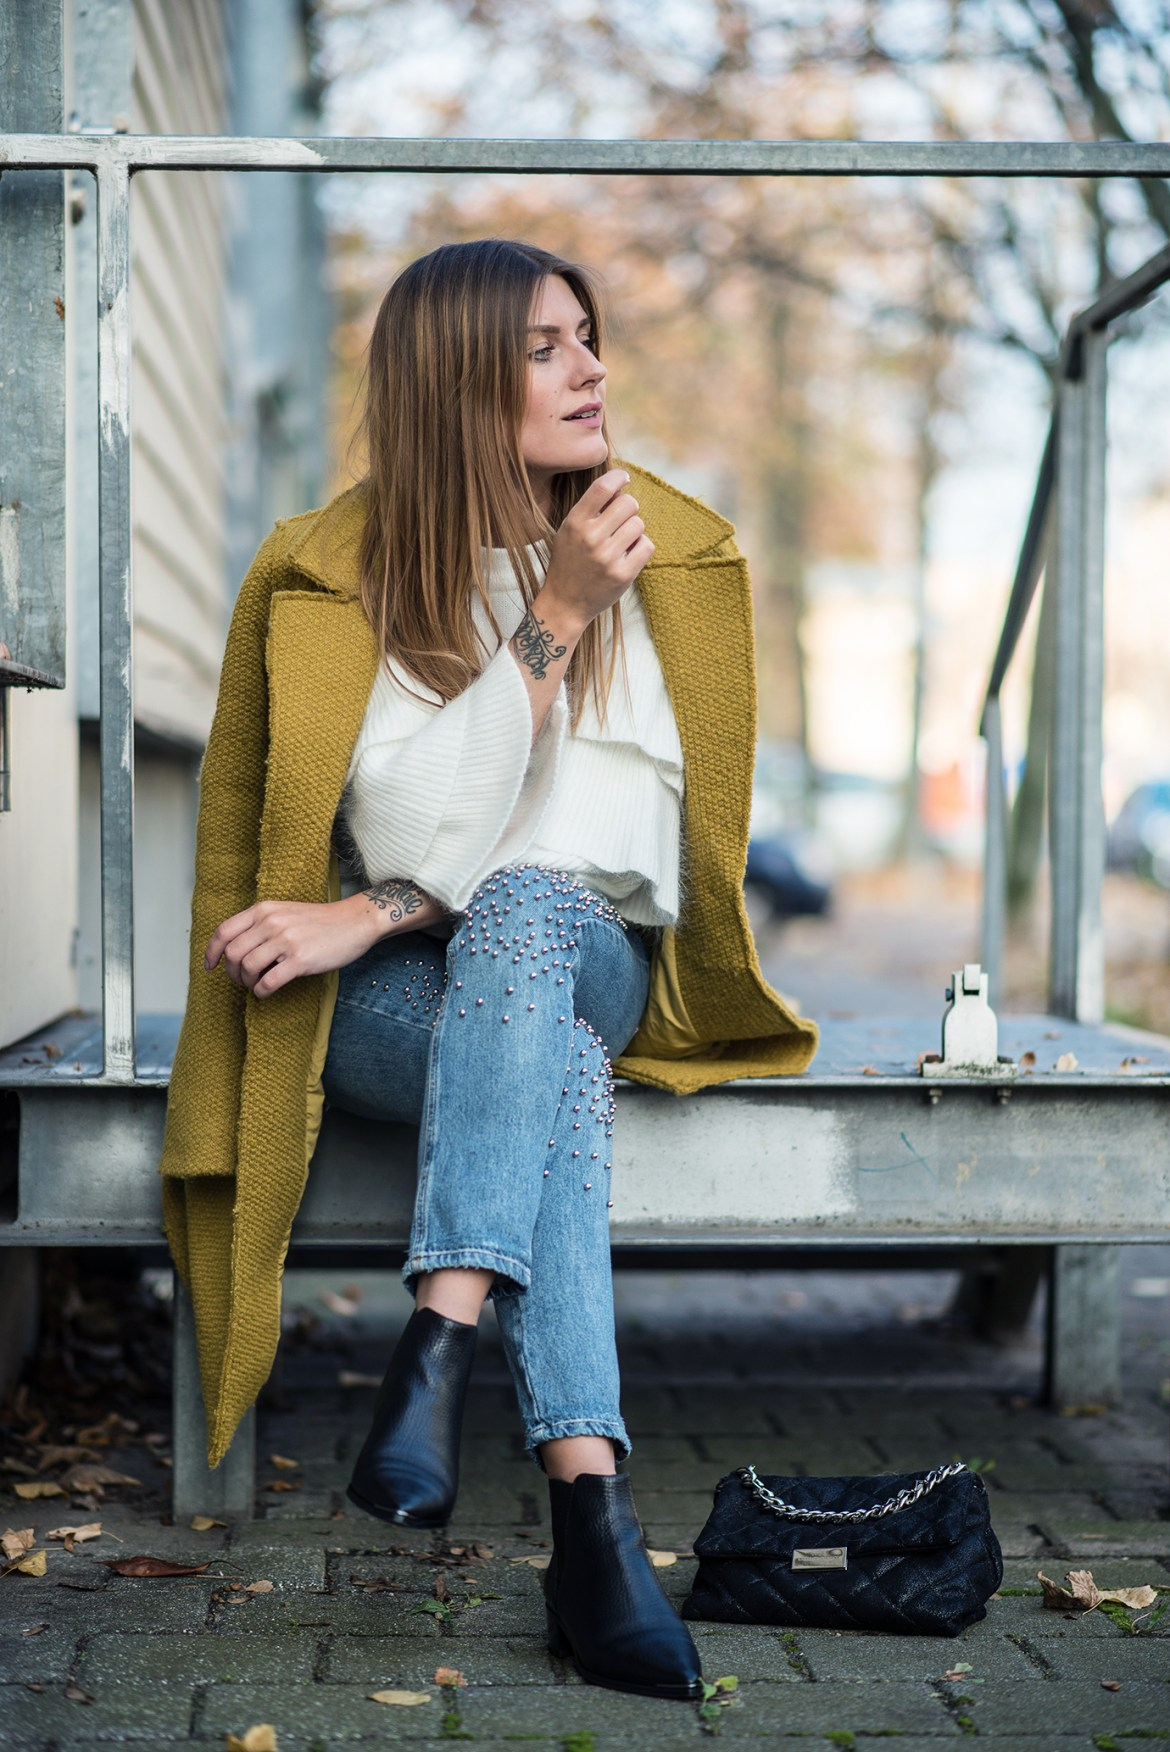 denim_girl_outfit_hoard_of_trends_8